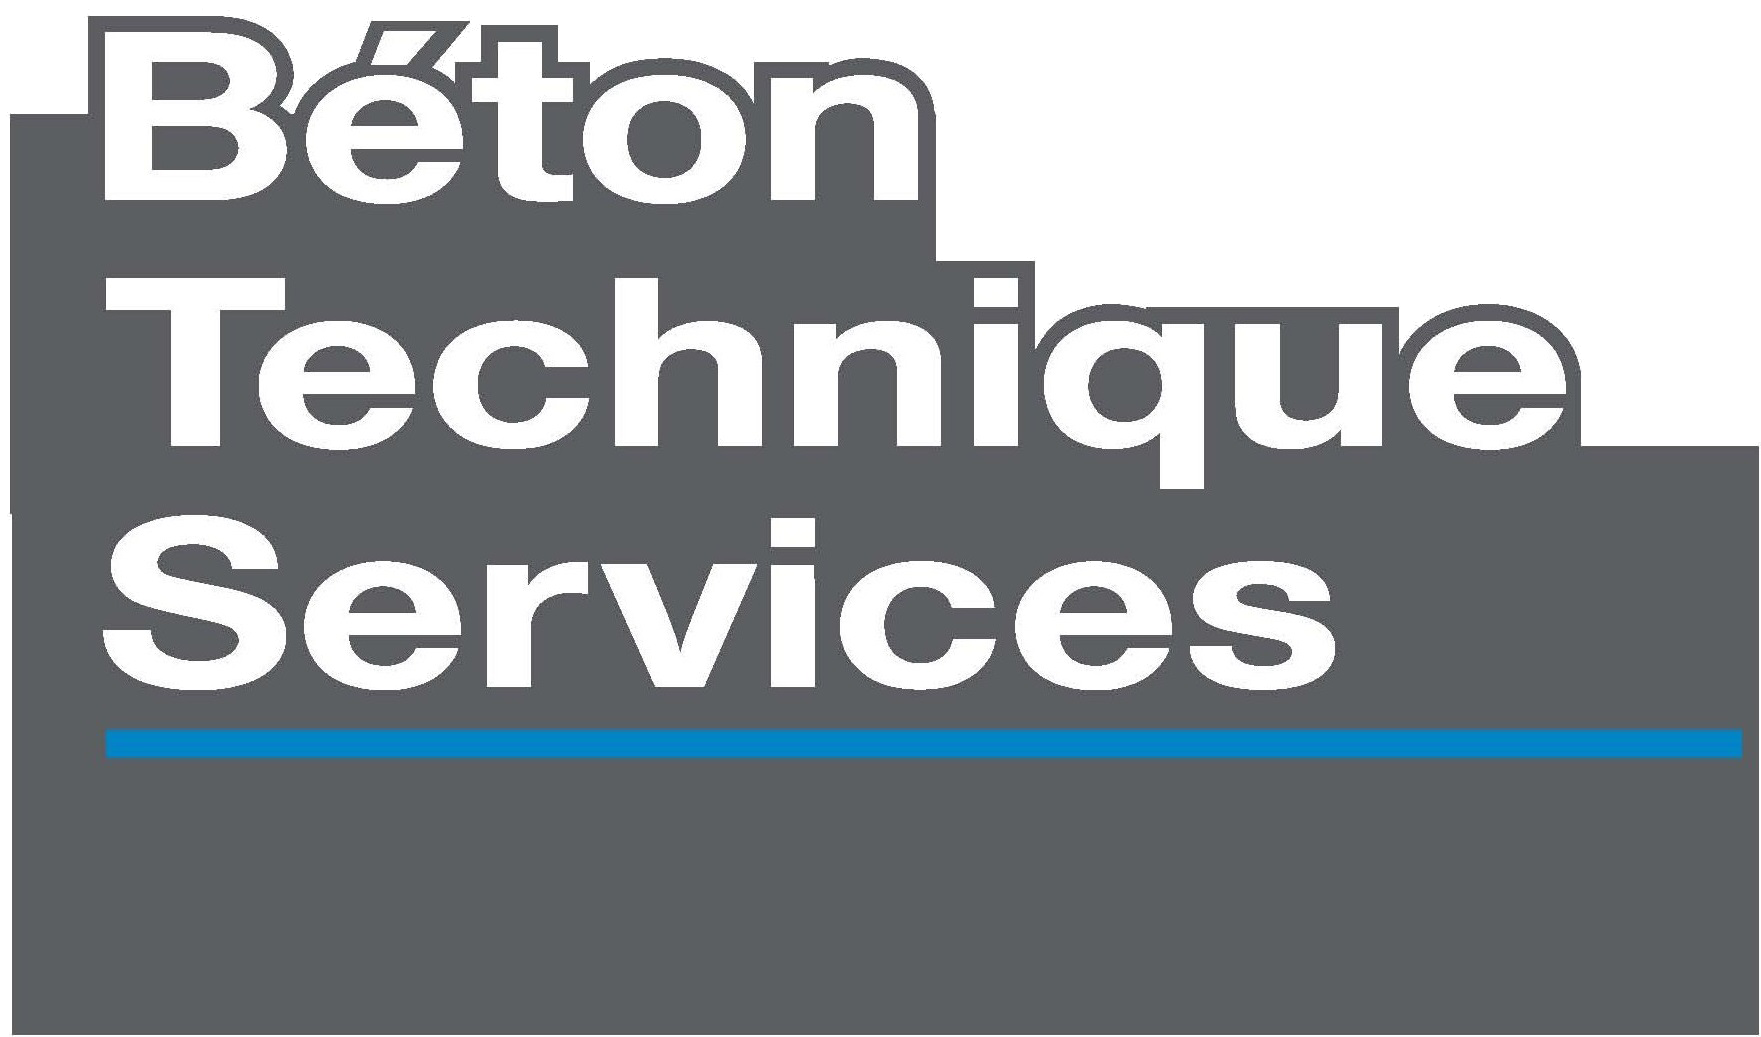 BETON TECHNIQUE SERVICES